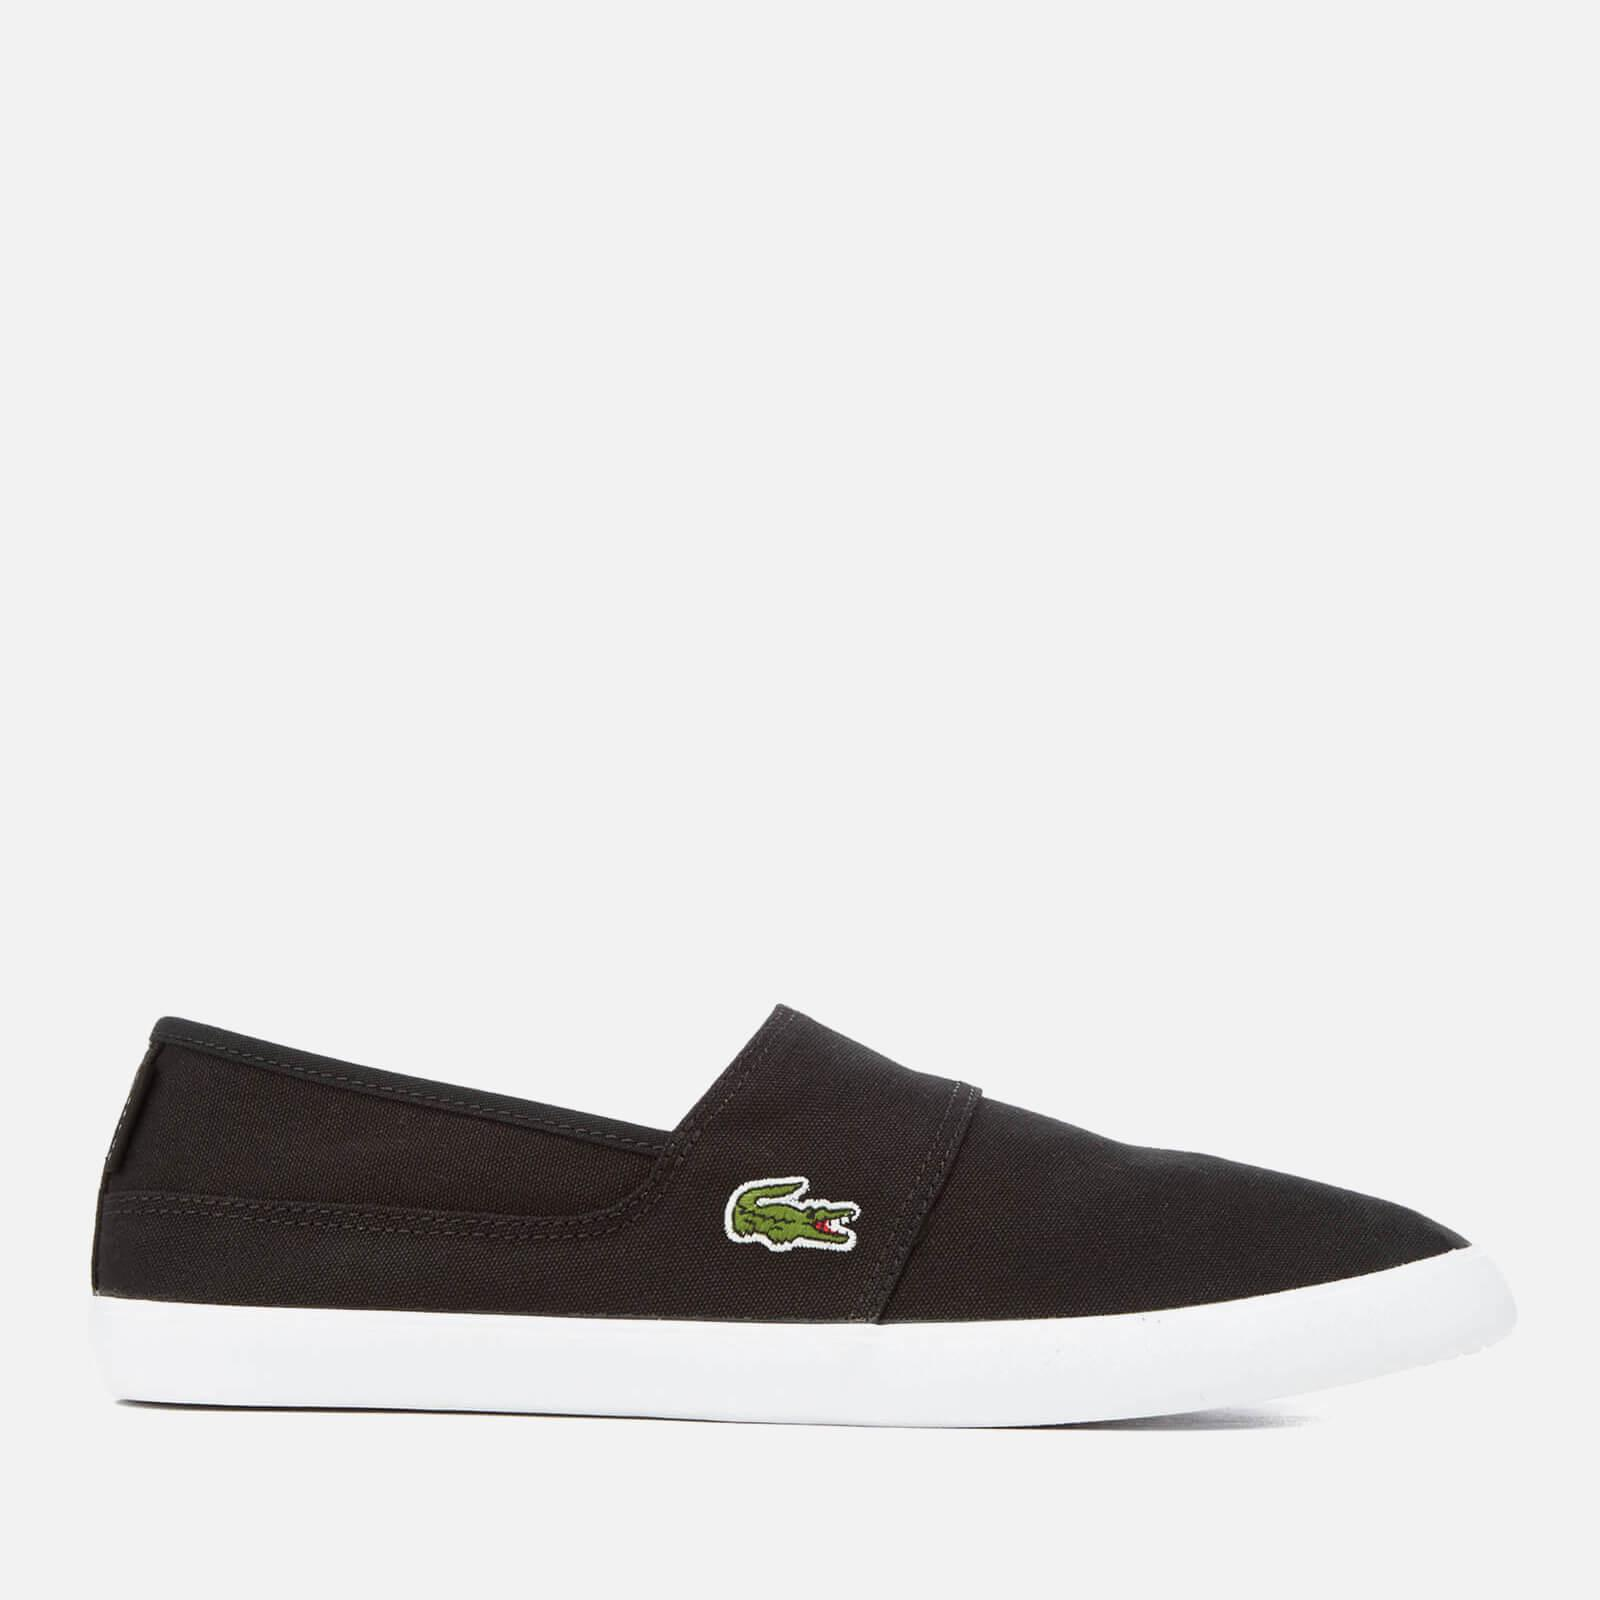 2a5d7a72da196 Lyst - Lacoste Marice Canvas Slip-on Pumps in Black for Men